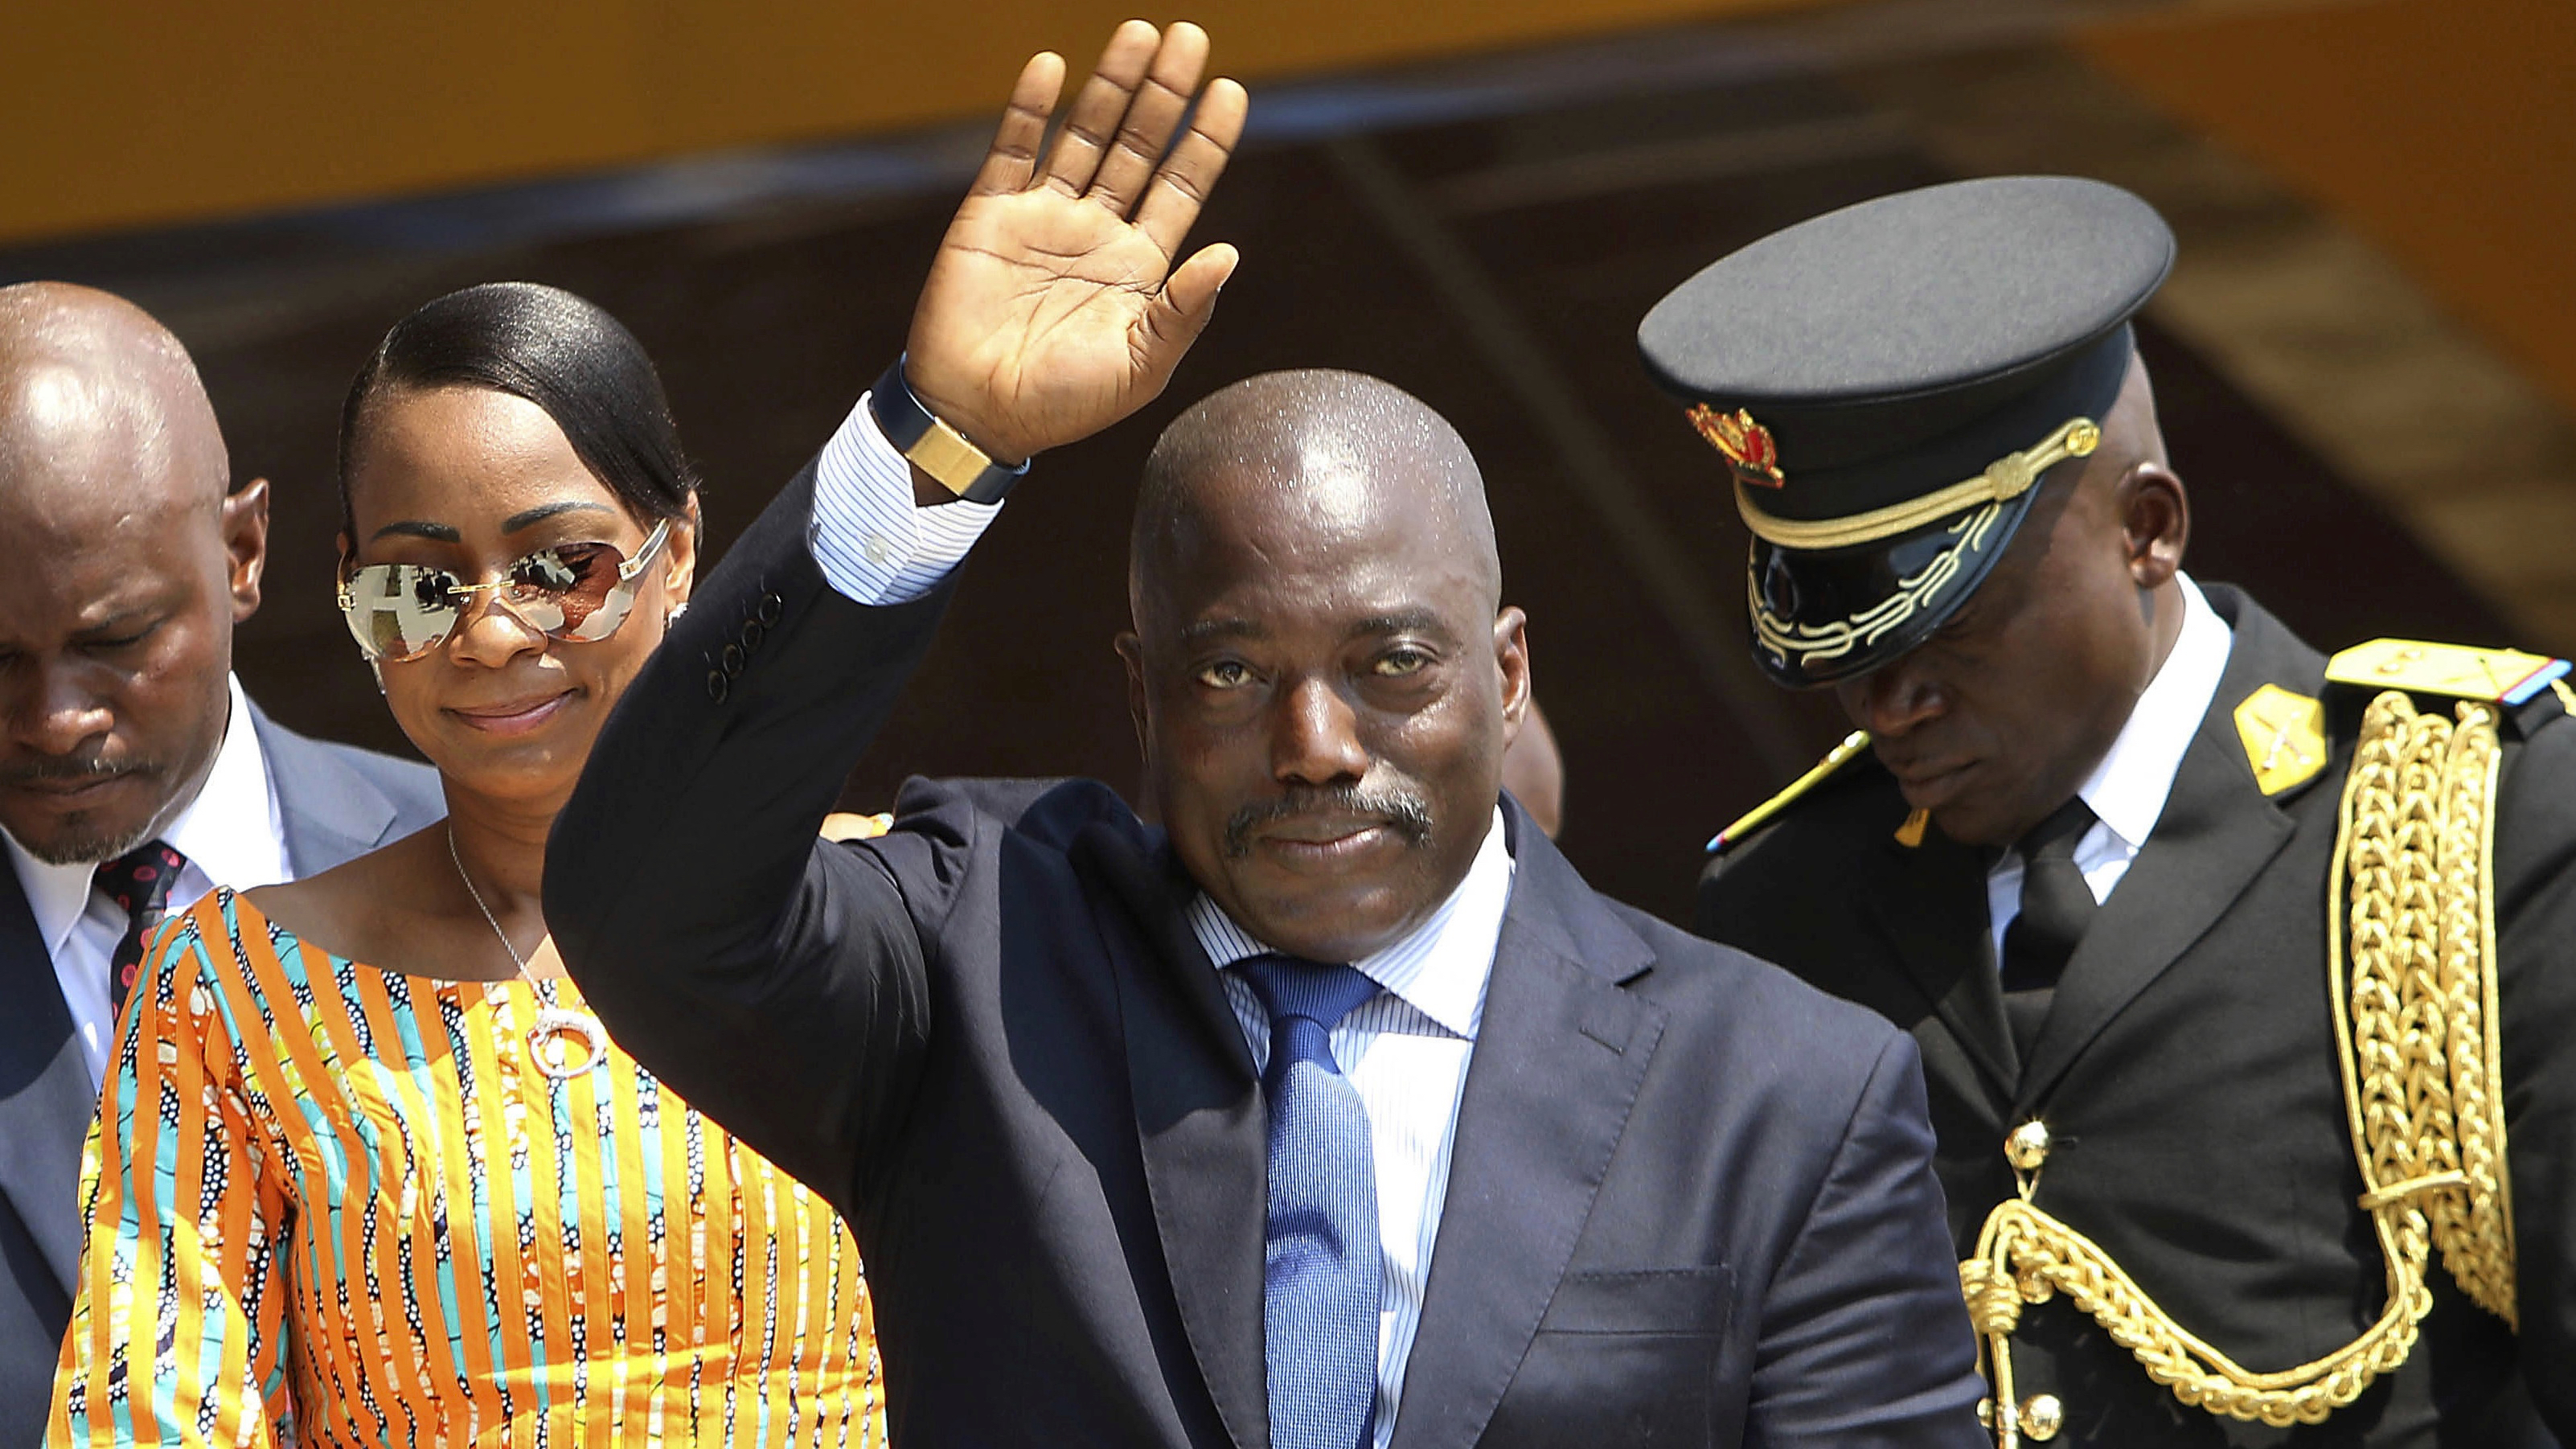 DR Congo election: Joseph Kabila will not seek third term says communications minister